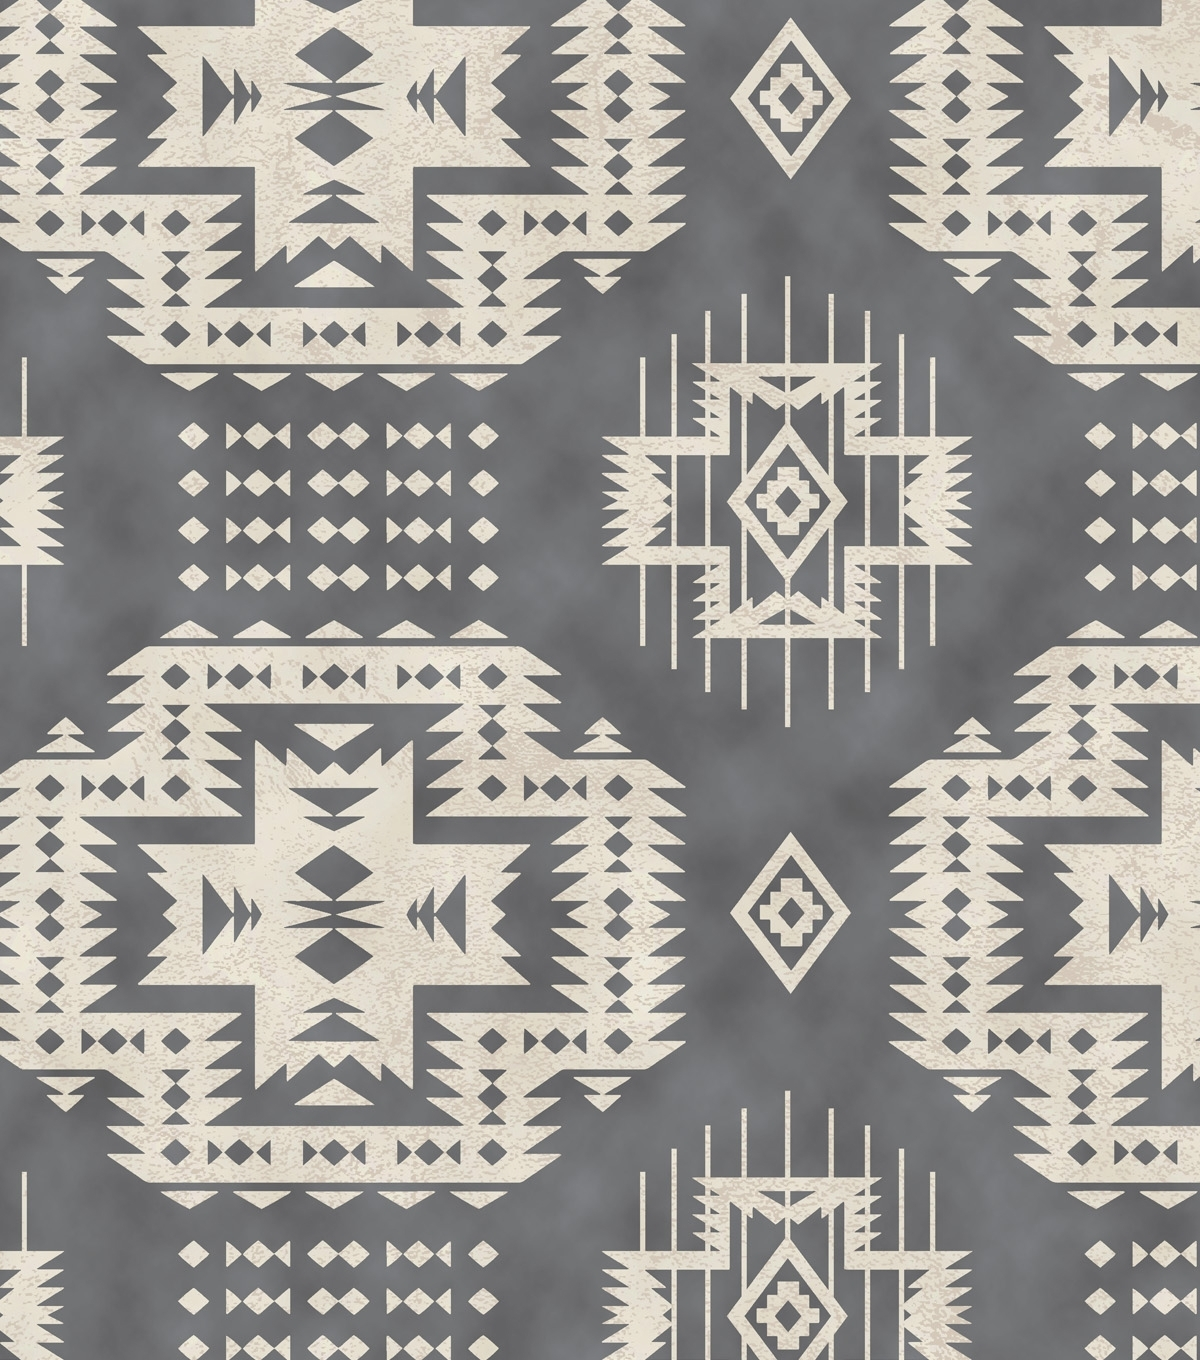 Snuggle Flannel Fabric Grey Aztec | Fabric Finds With Joann Inside Newest Aztec Fabric Wall Art (View 6 of 15)